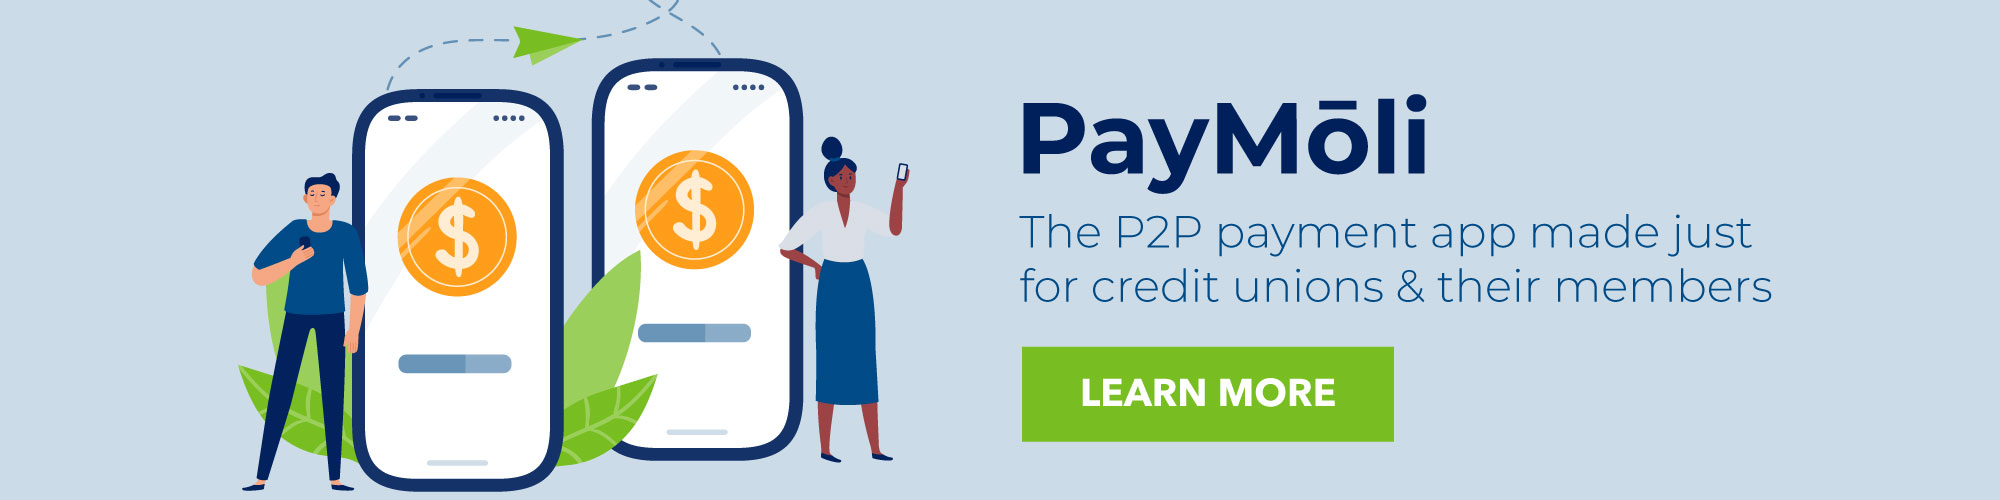 PayMoli - The P2P payment app made just for credit unions and their members